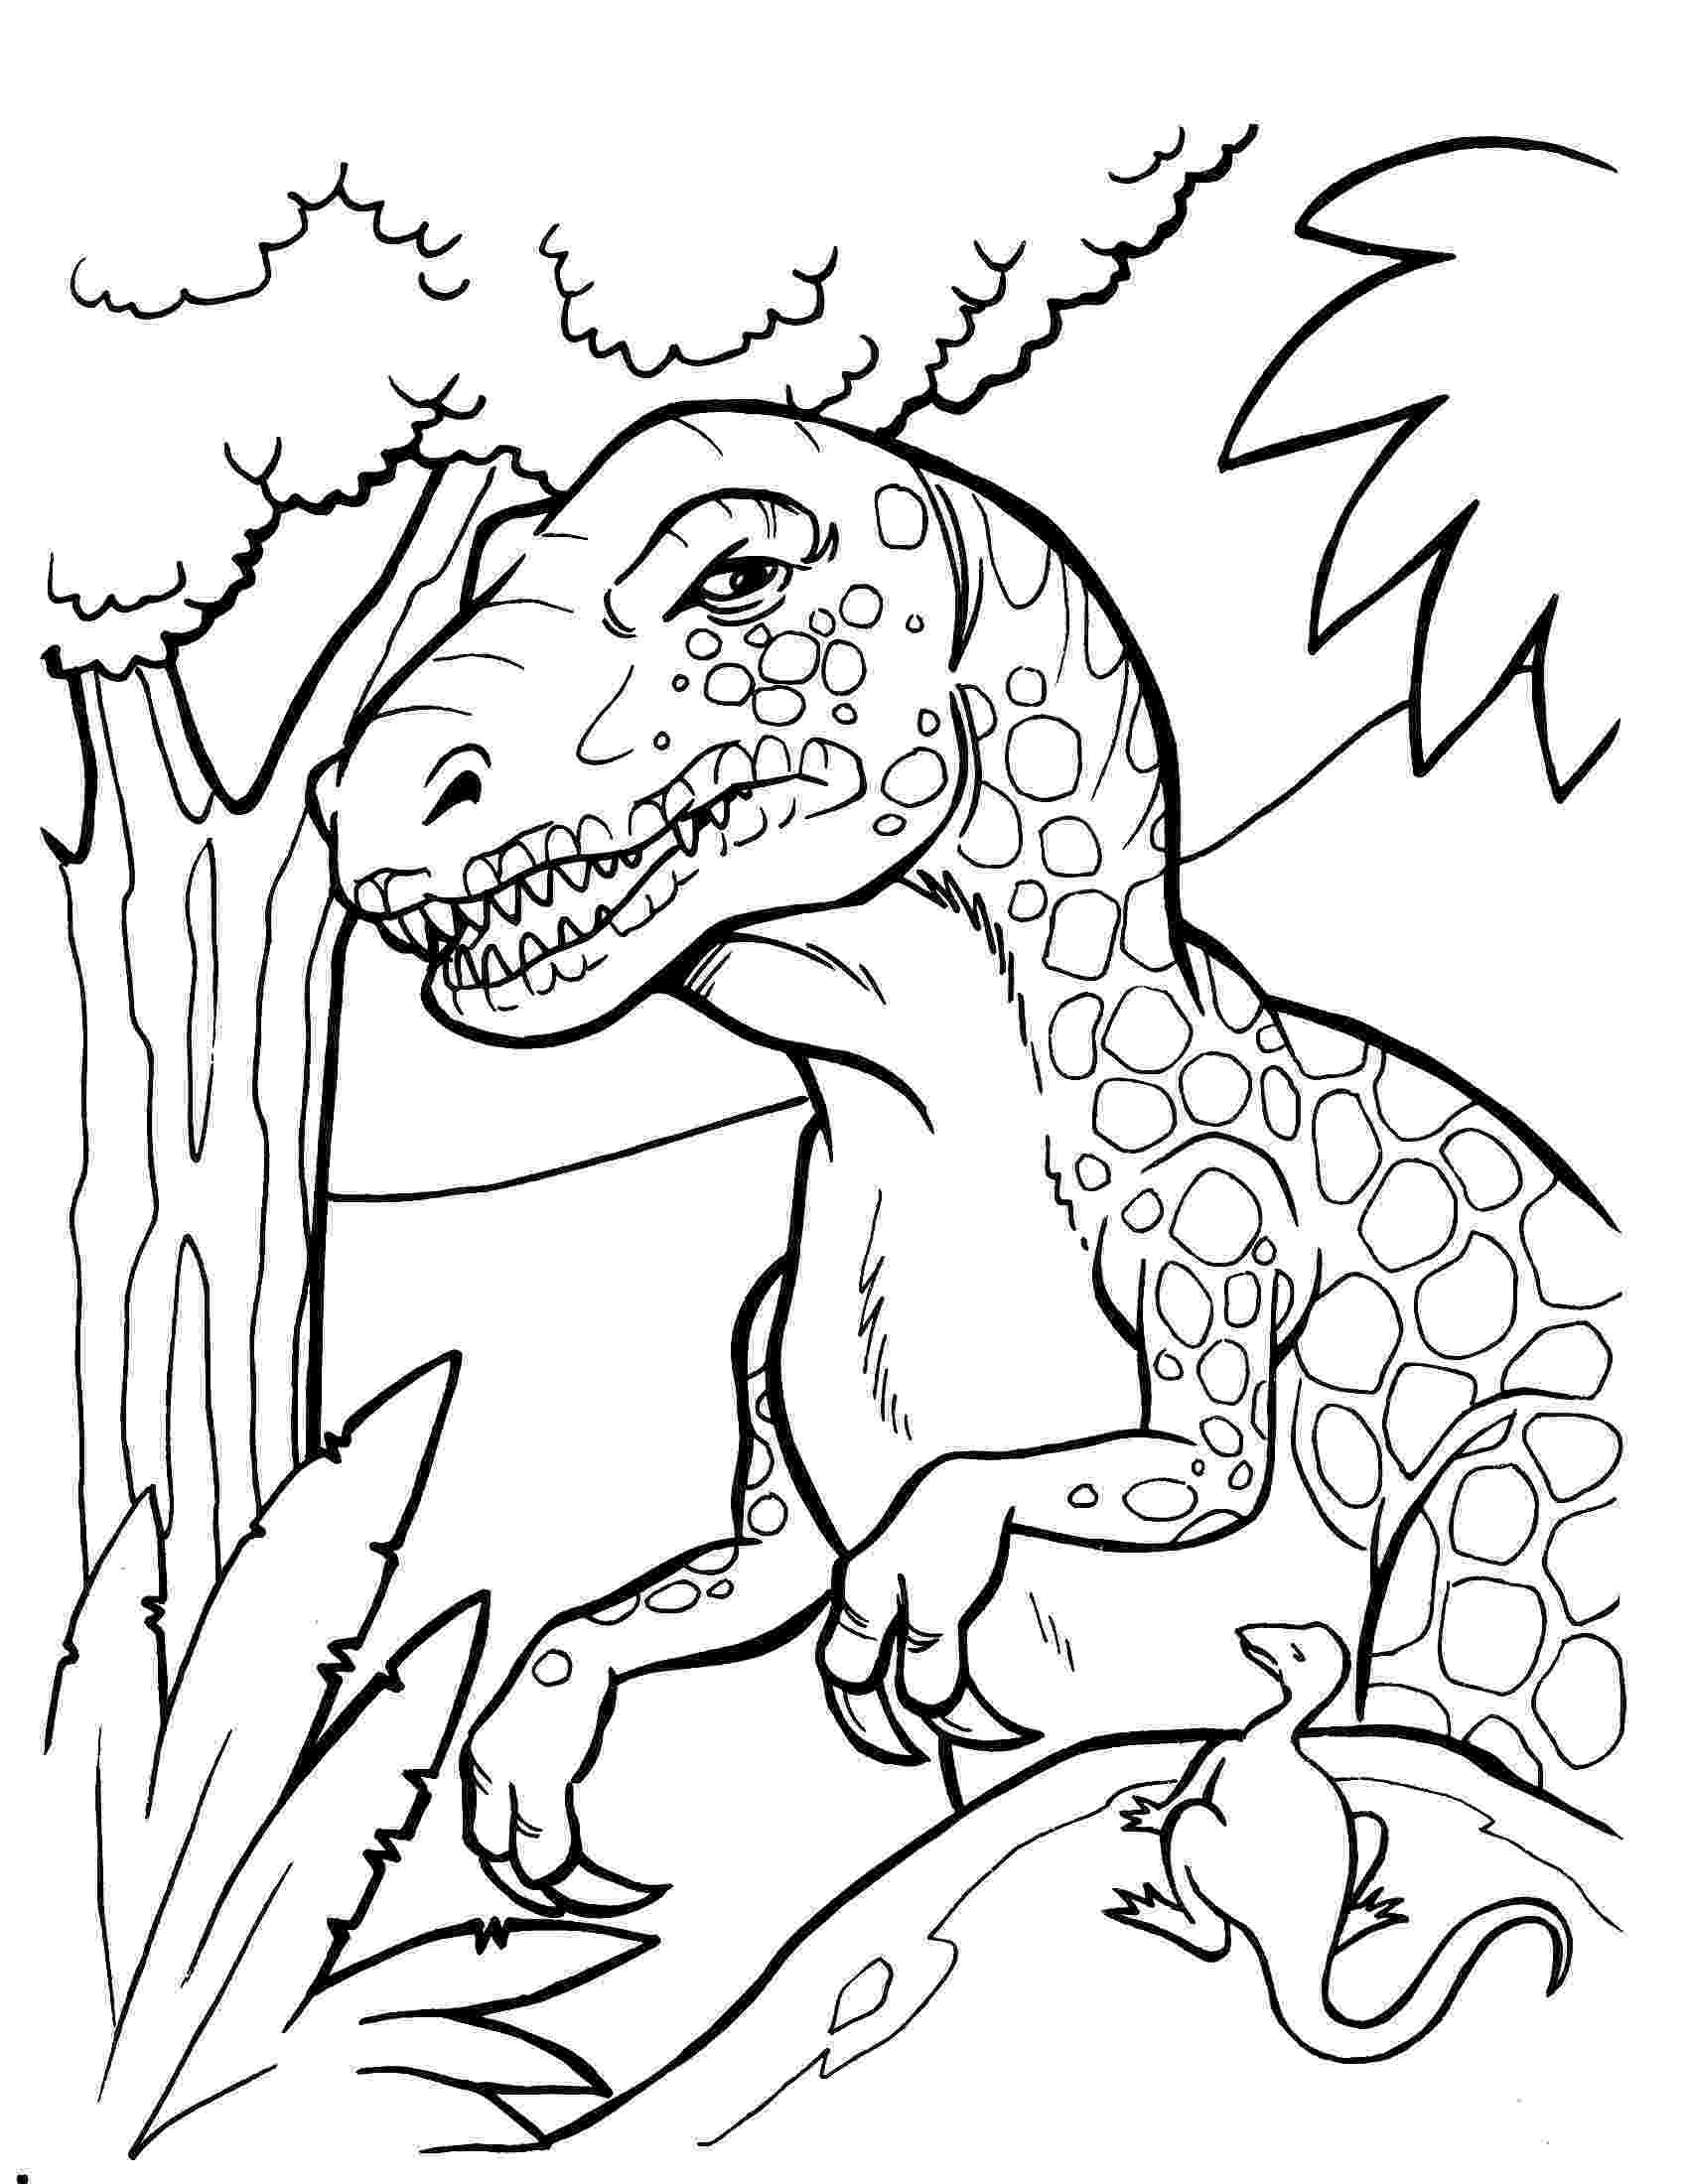 dinosaur for coloring dinosaur coloring pages to download and print for free for dinosaur coloring